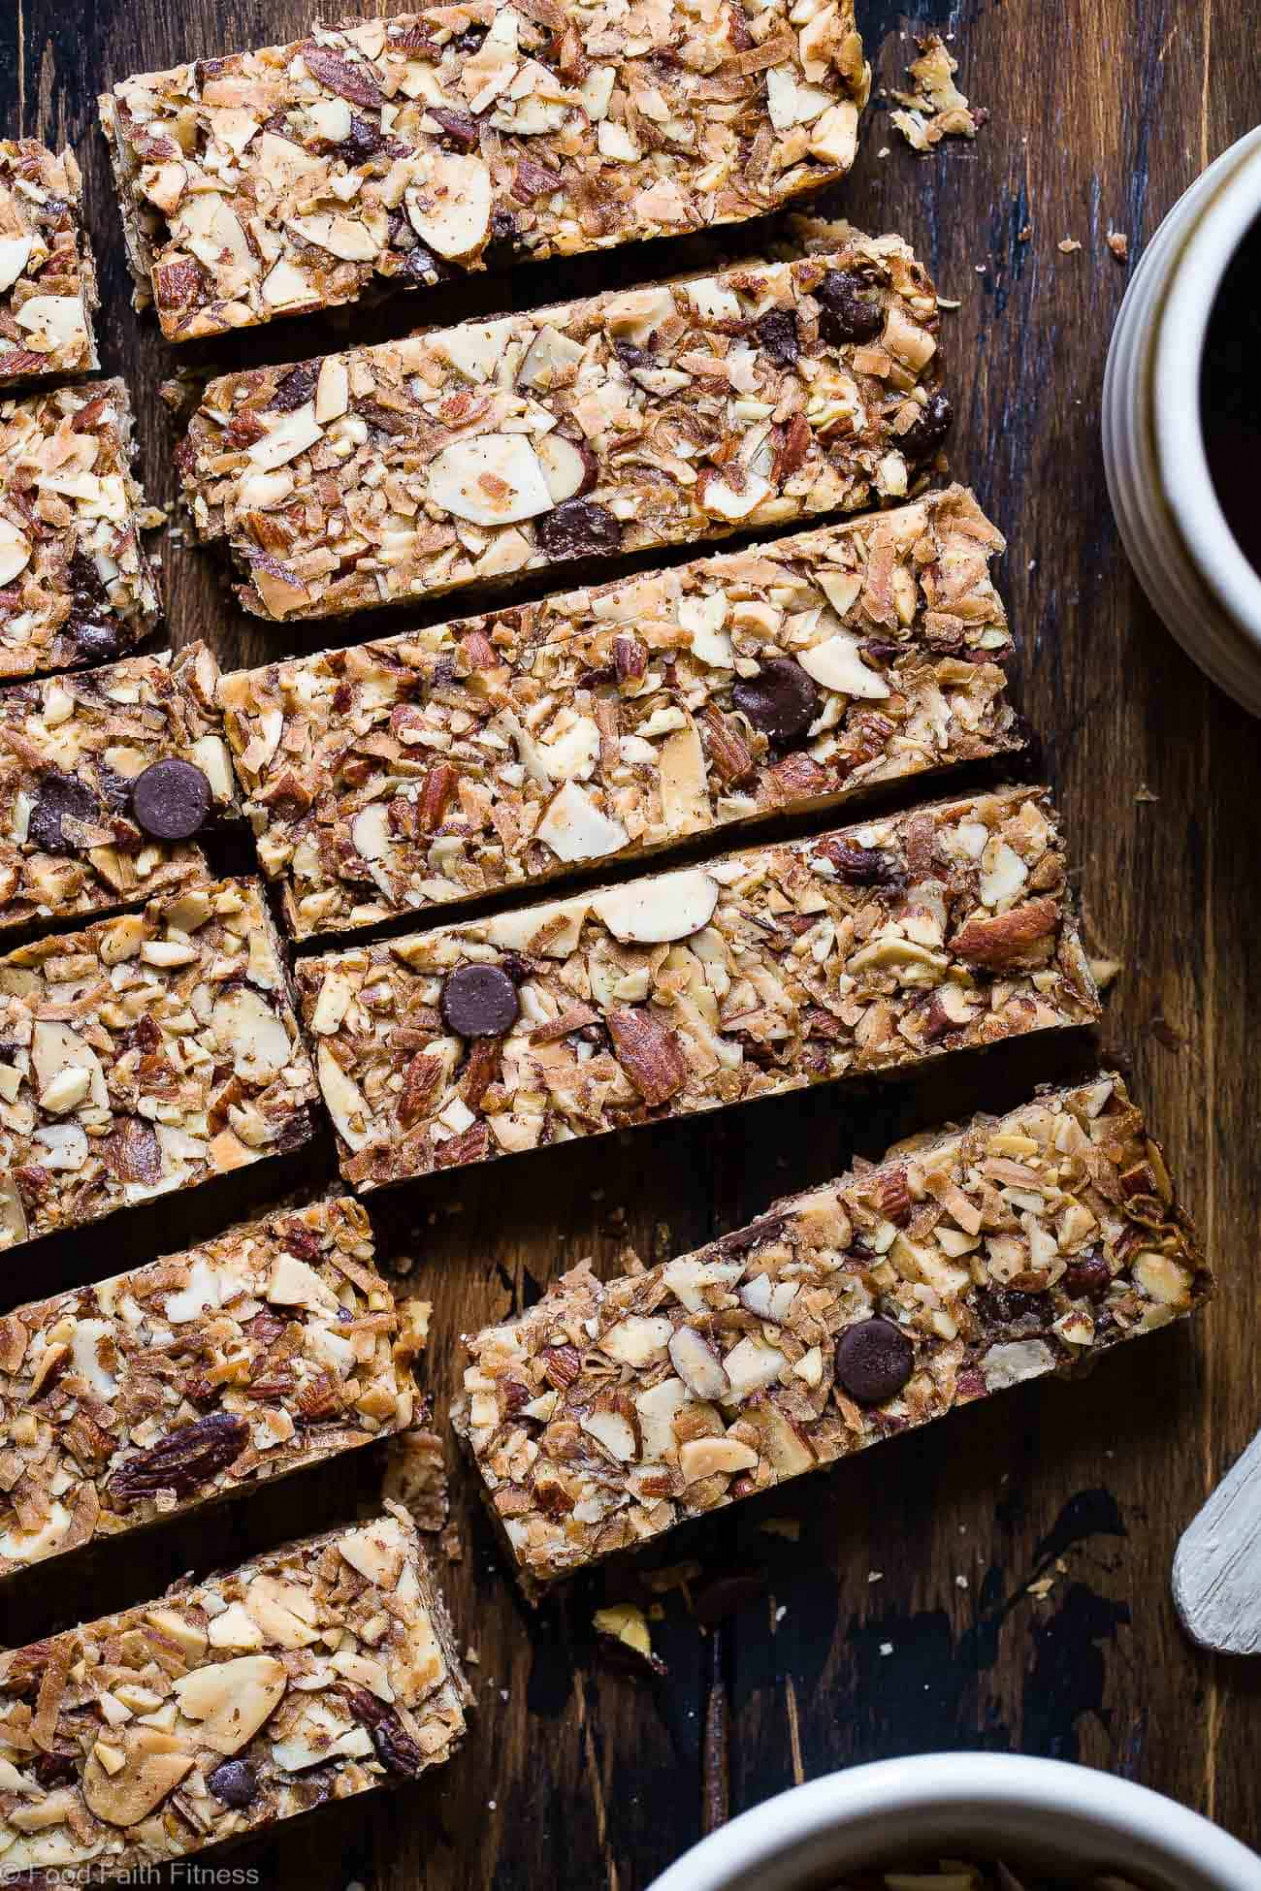 Healthy Sugar Free Keto Low Carb Granola Bars | Food Faith ..